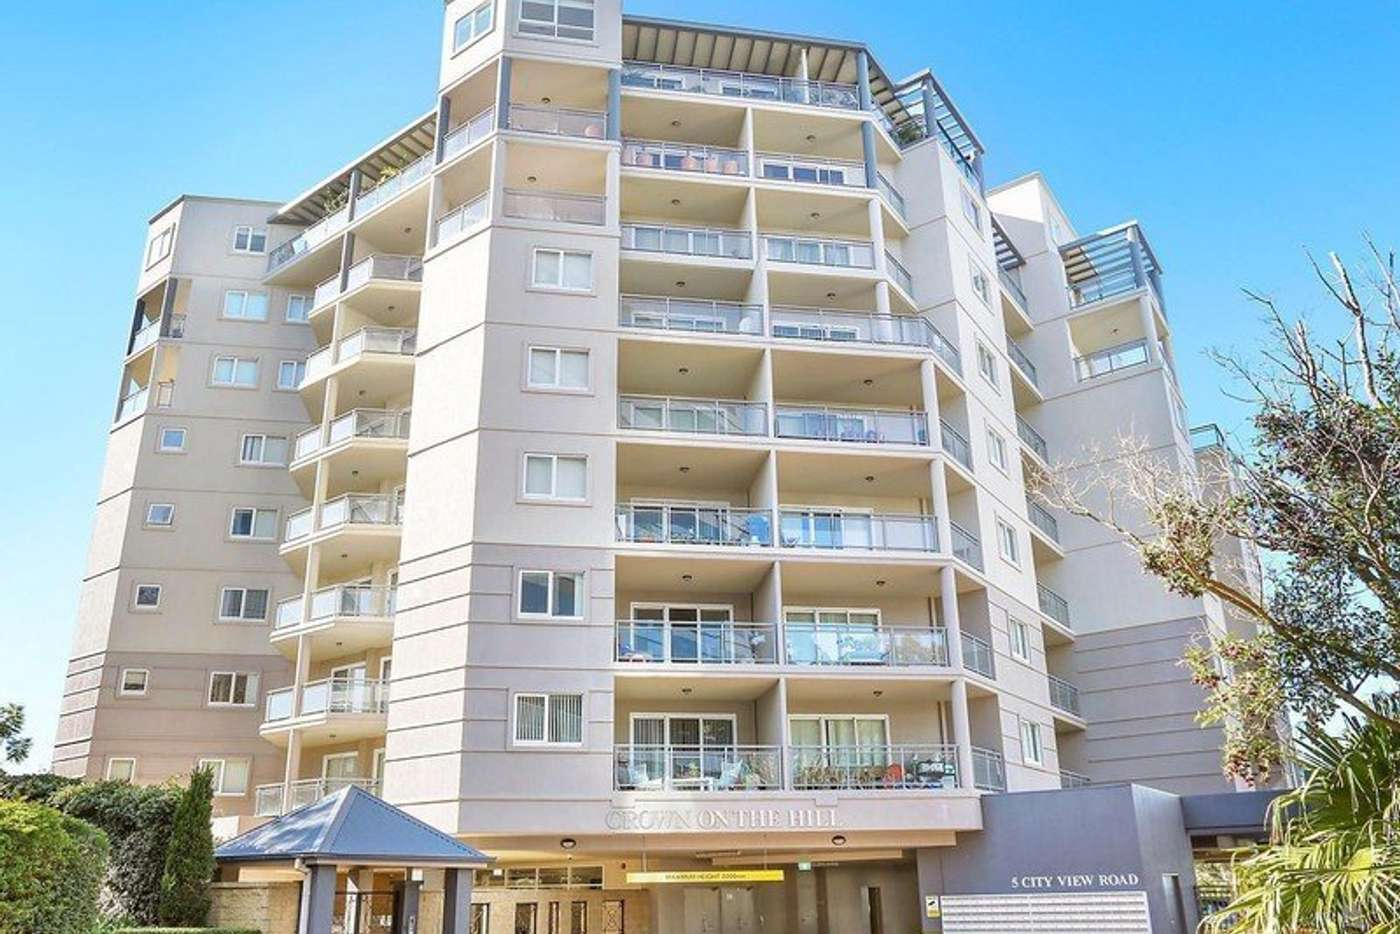 Main view of Homely unit listing, 111/5 City View Road, Pennant Hills NSW 2120